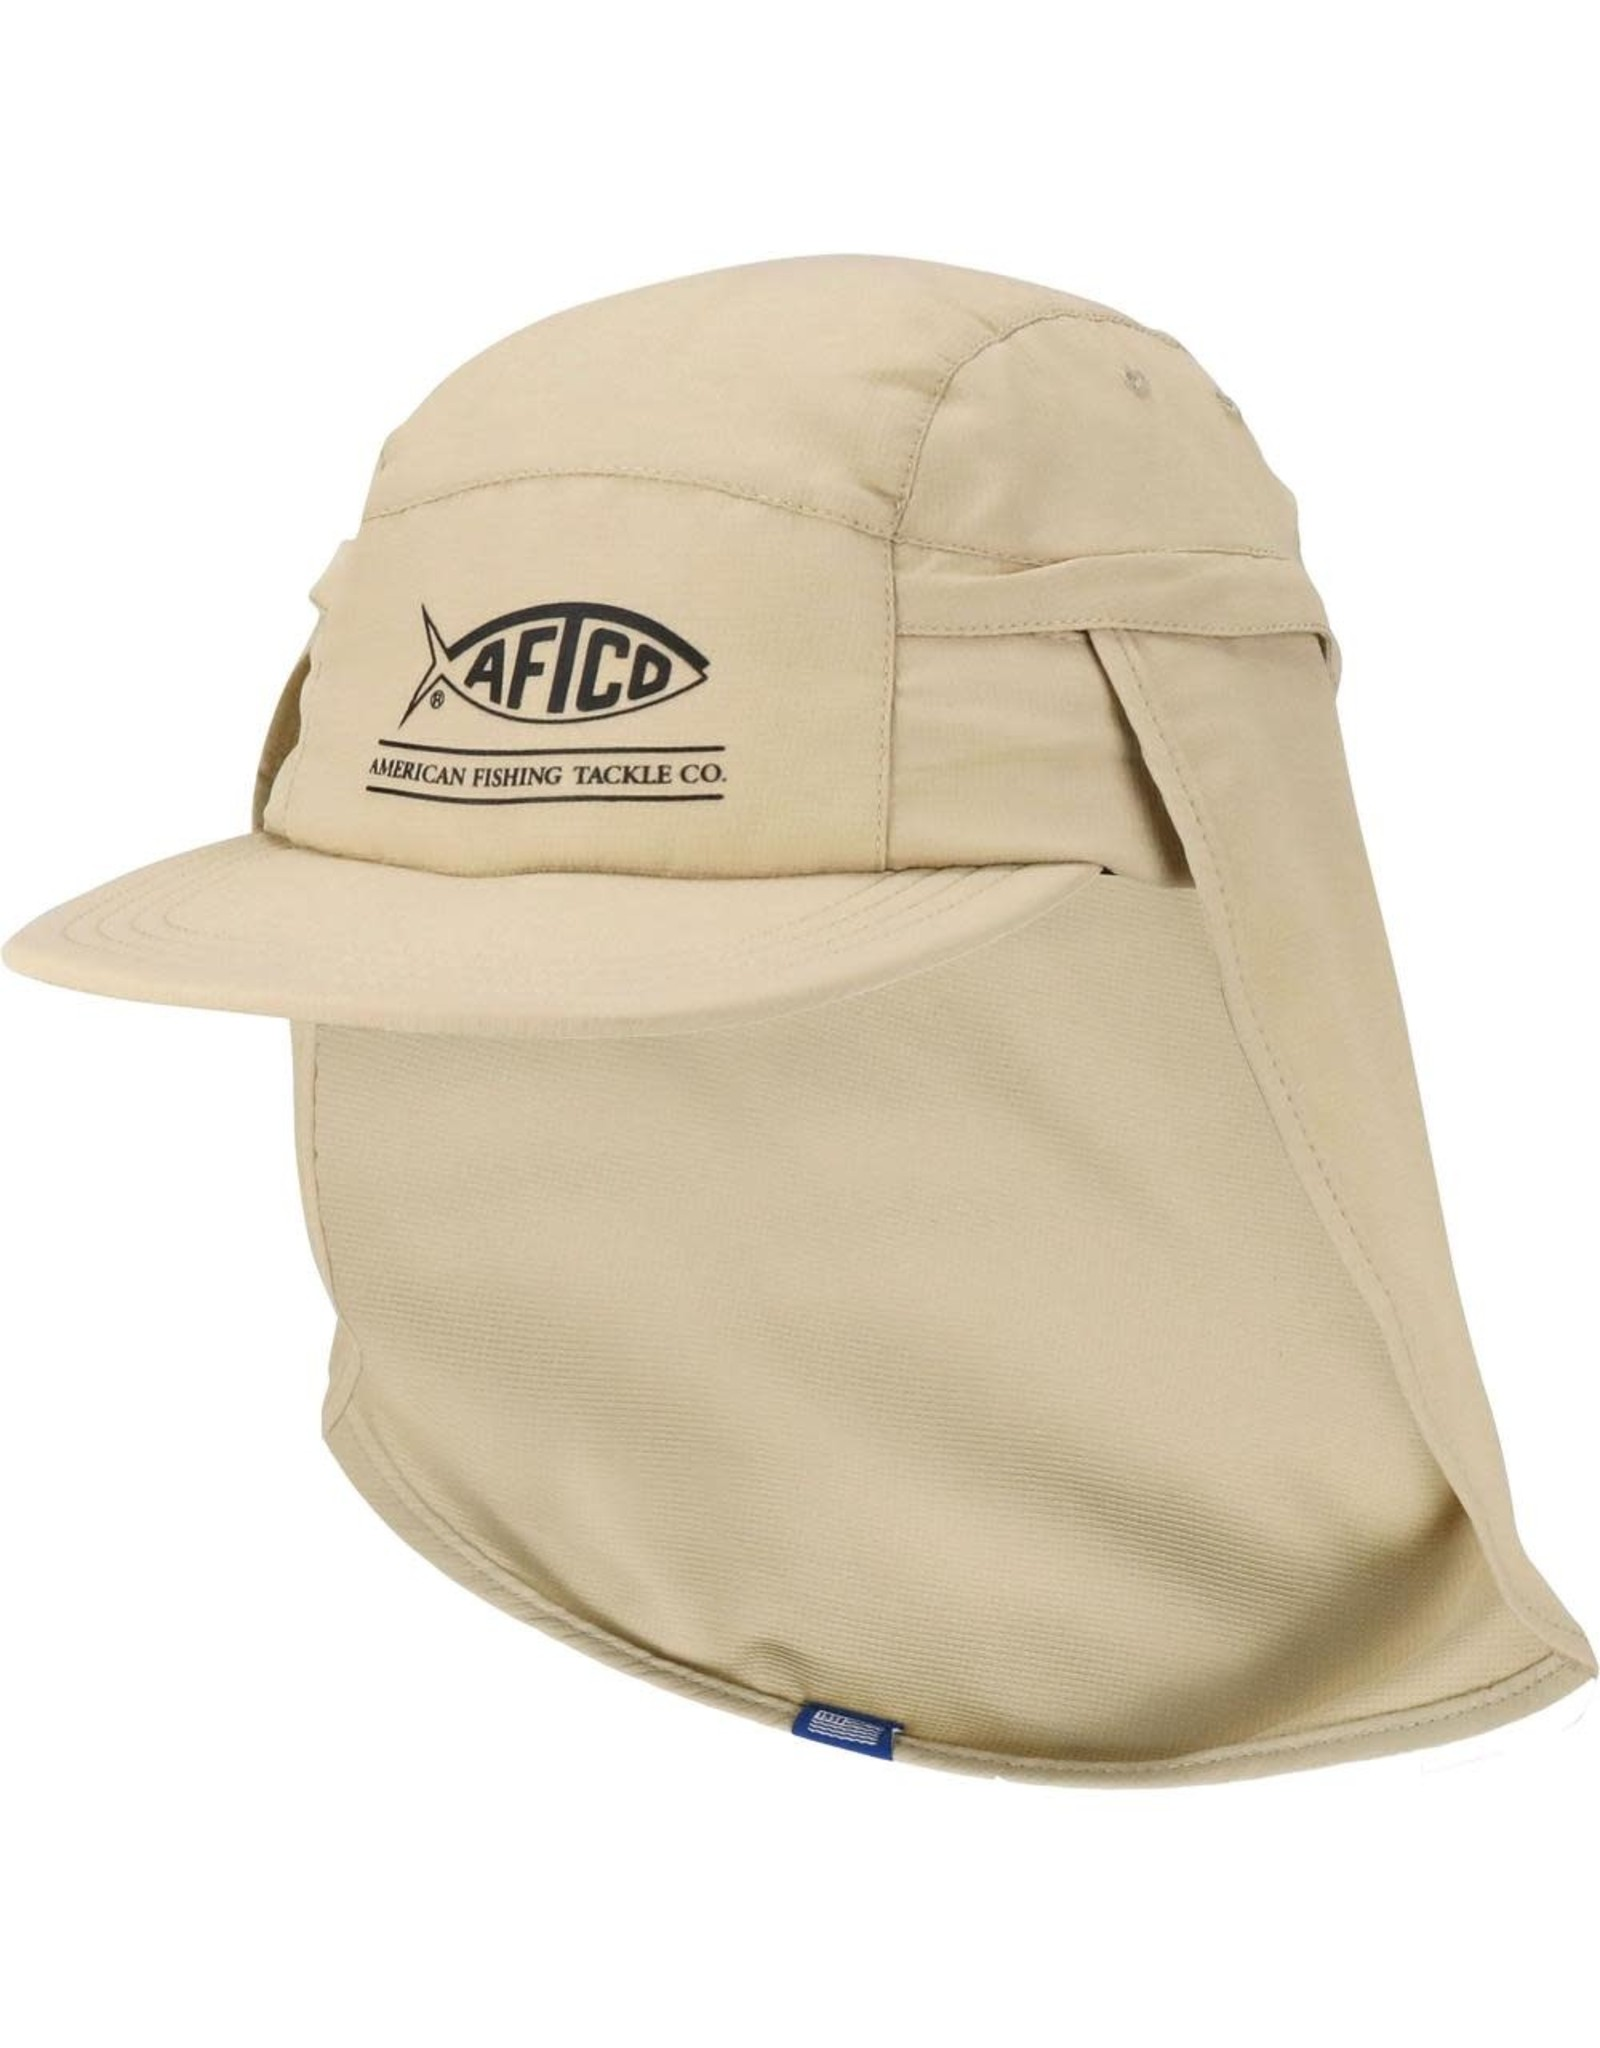 AFTCO AFTCO Fishing Guide Hat